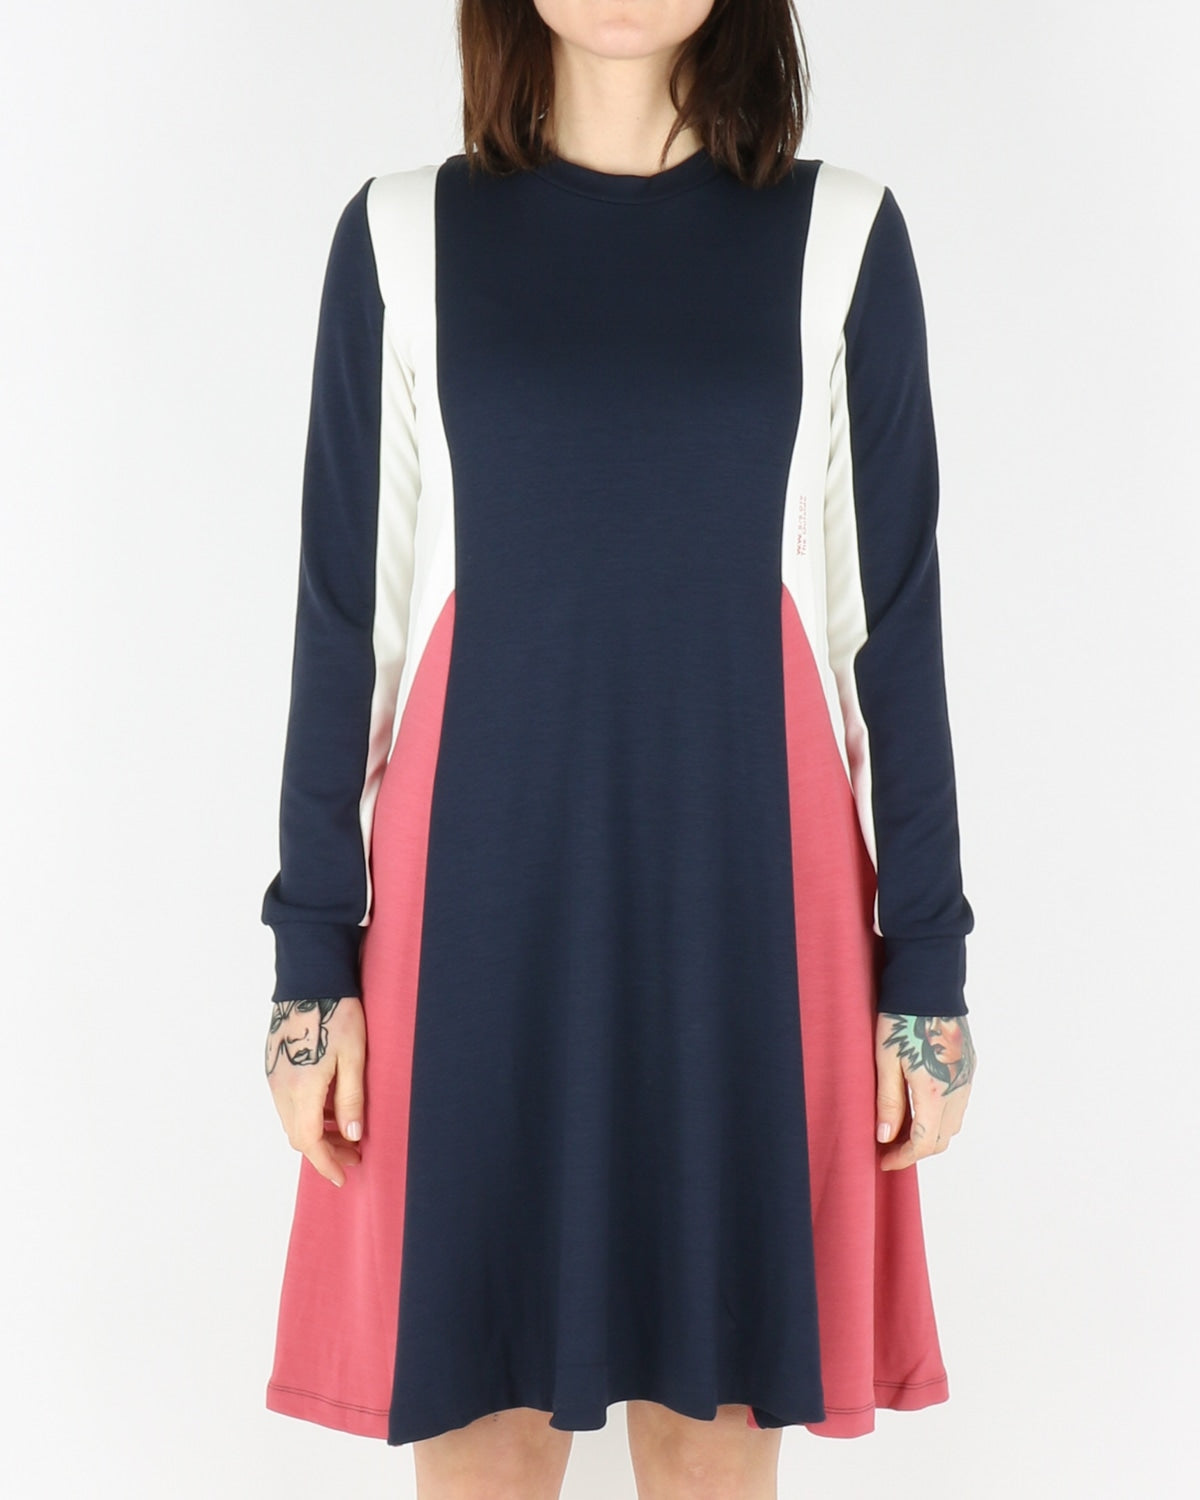 wood wood_mandy dress_navy colorblock_view_1_4